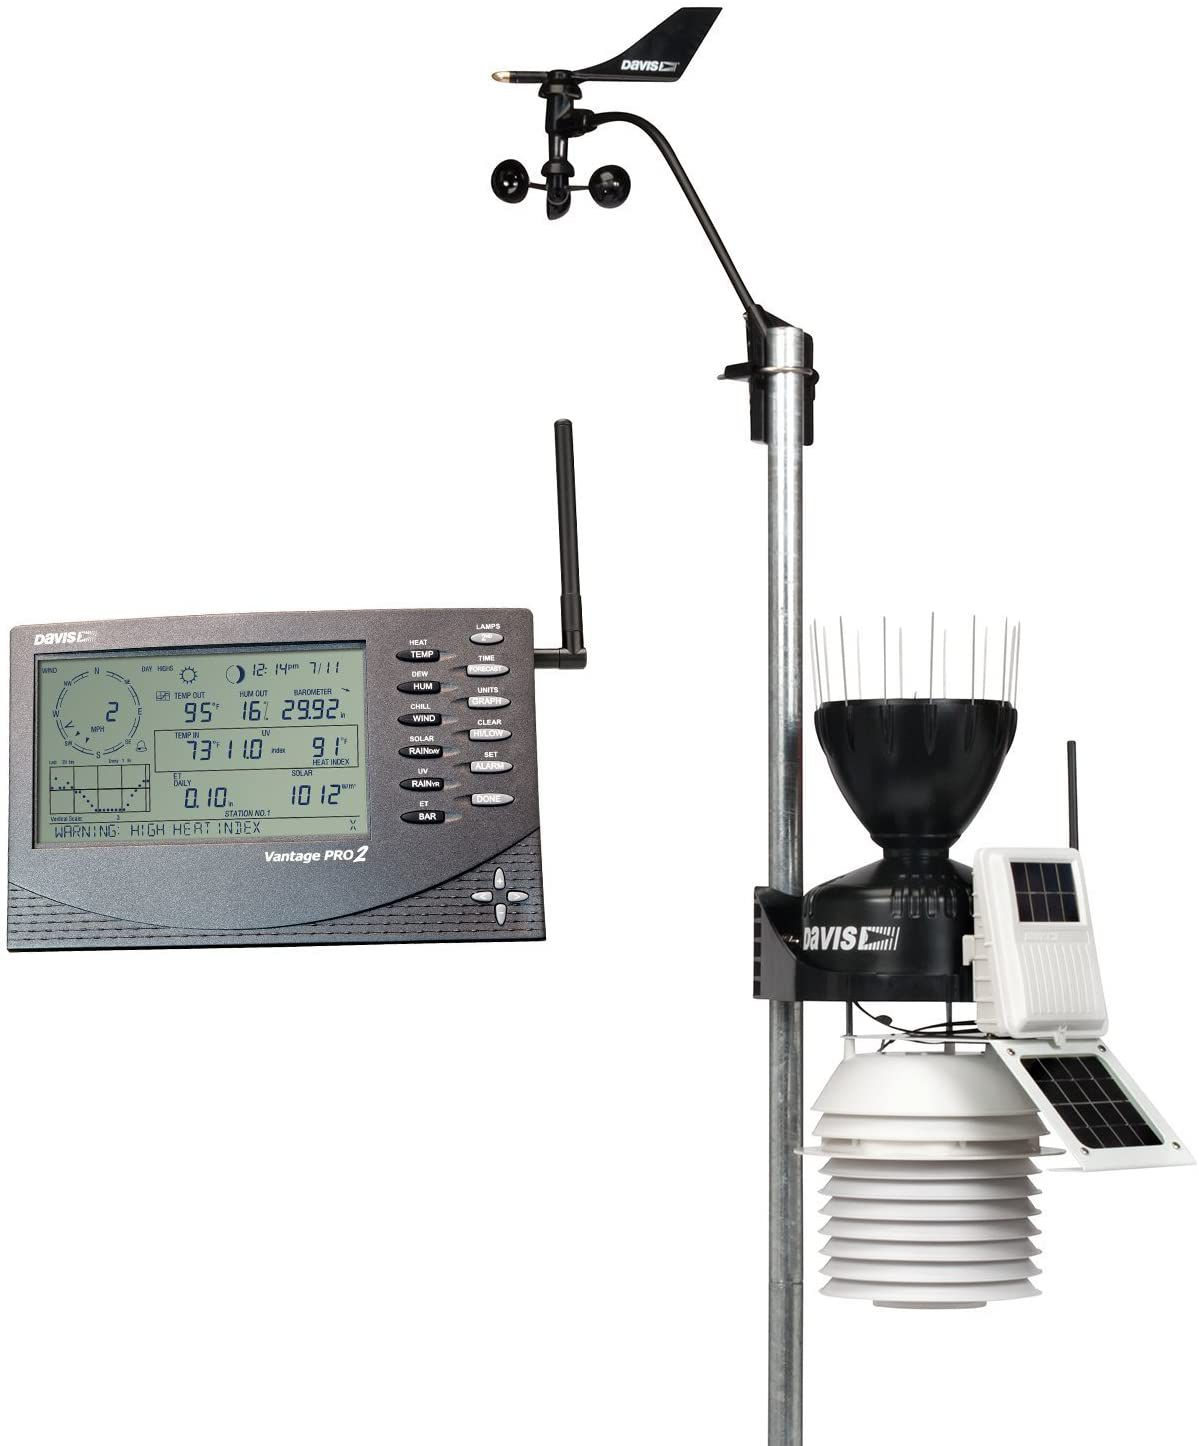 The Davis Instruments 6153 Vantage Pro2 will tell you the weather.